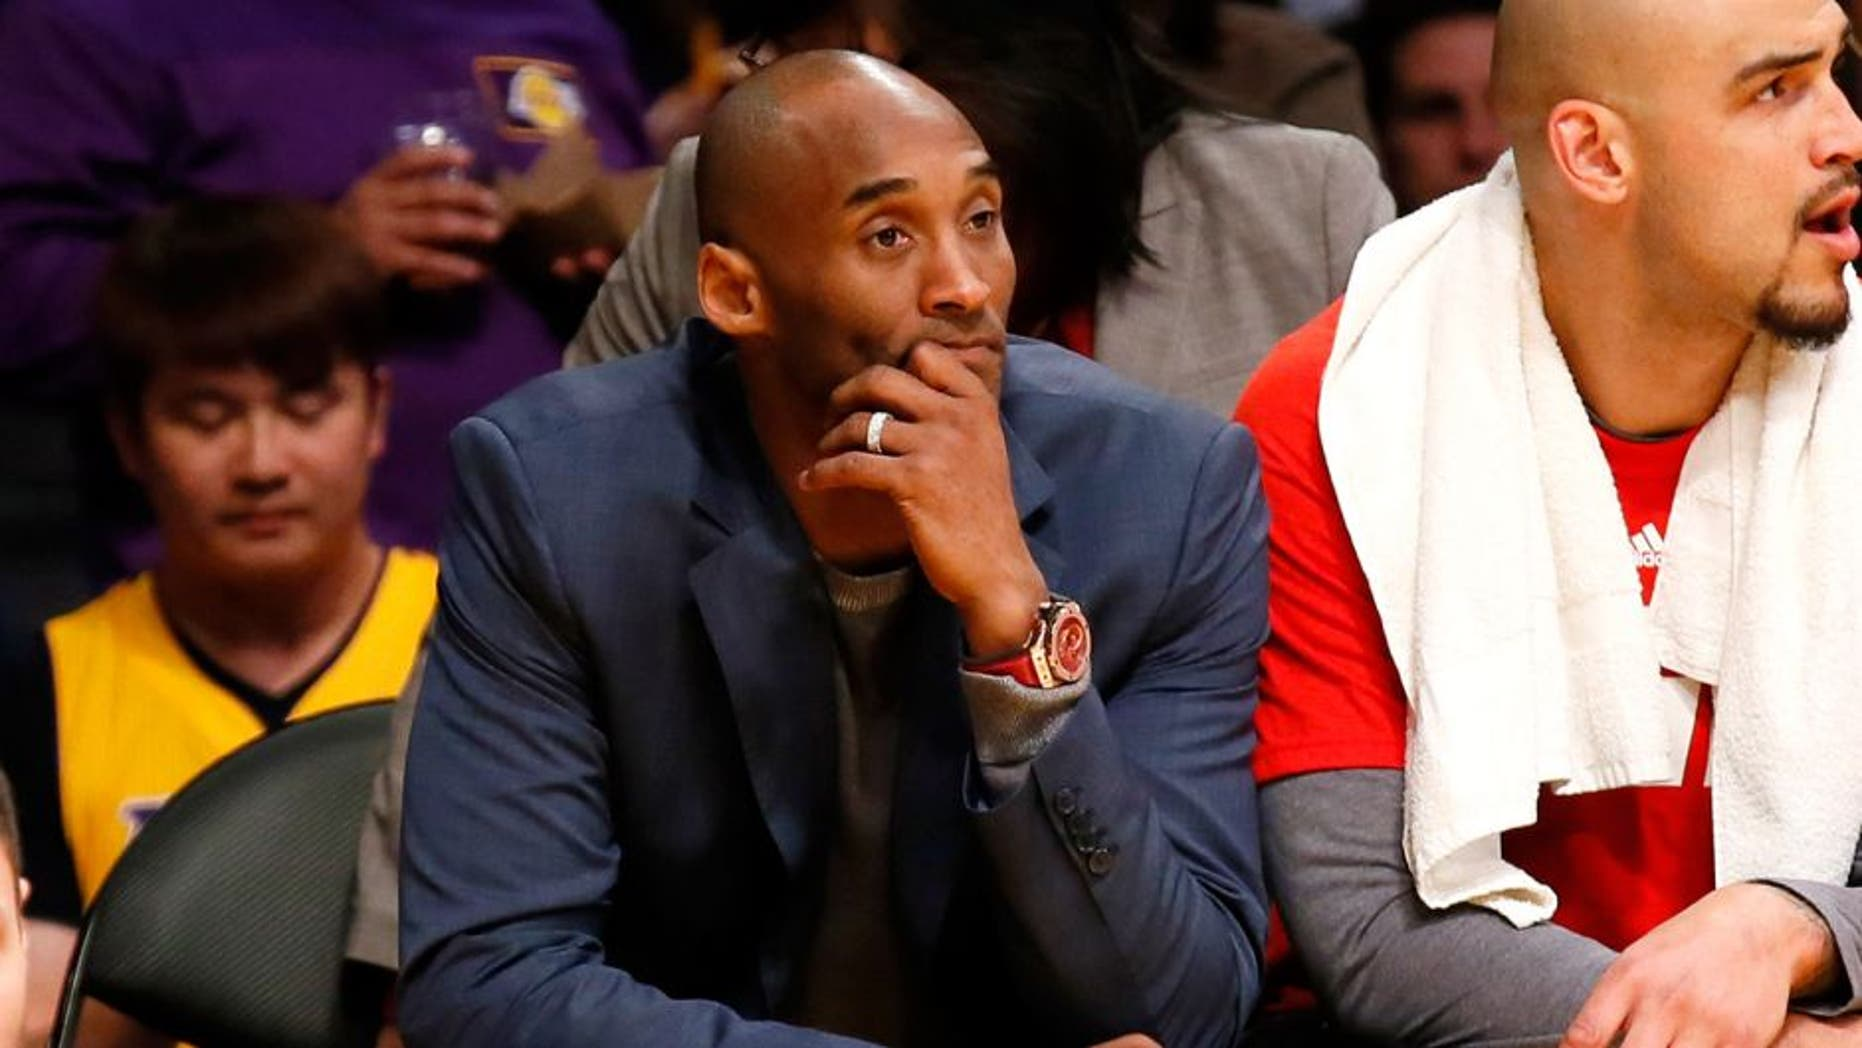 Los Angeles Lakers' Kobe Bryant sits on the bench during the first half of the team's NBA basketball game against the Dallas Mavericks, Tuesday, Jan. 26, 2016, in Los Angeles. (AP Photo/Danny Moloshok)